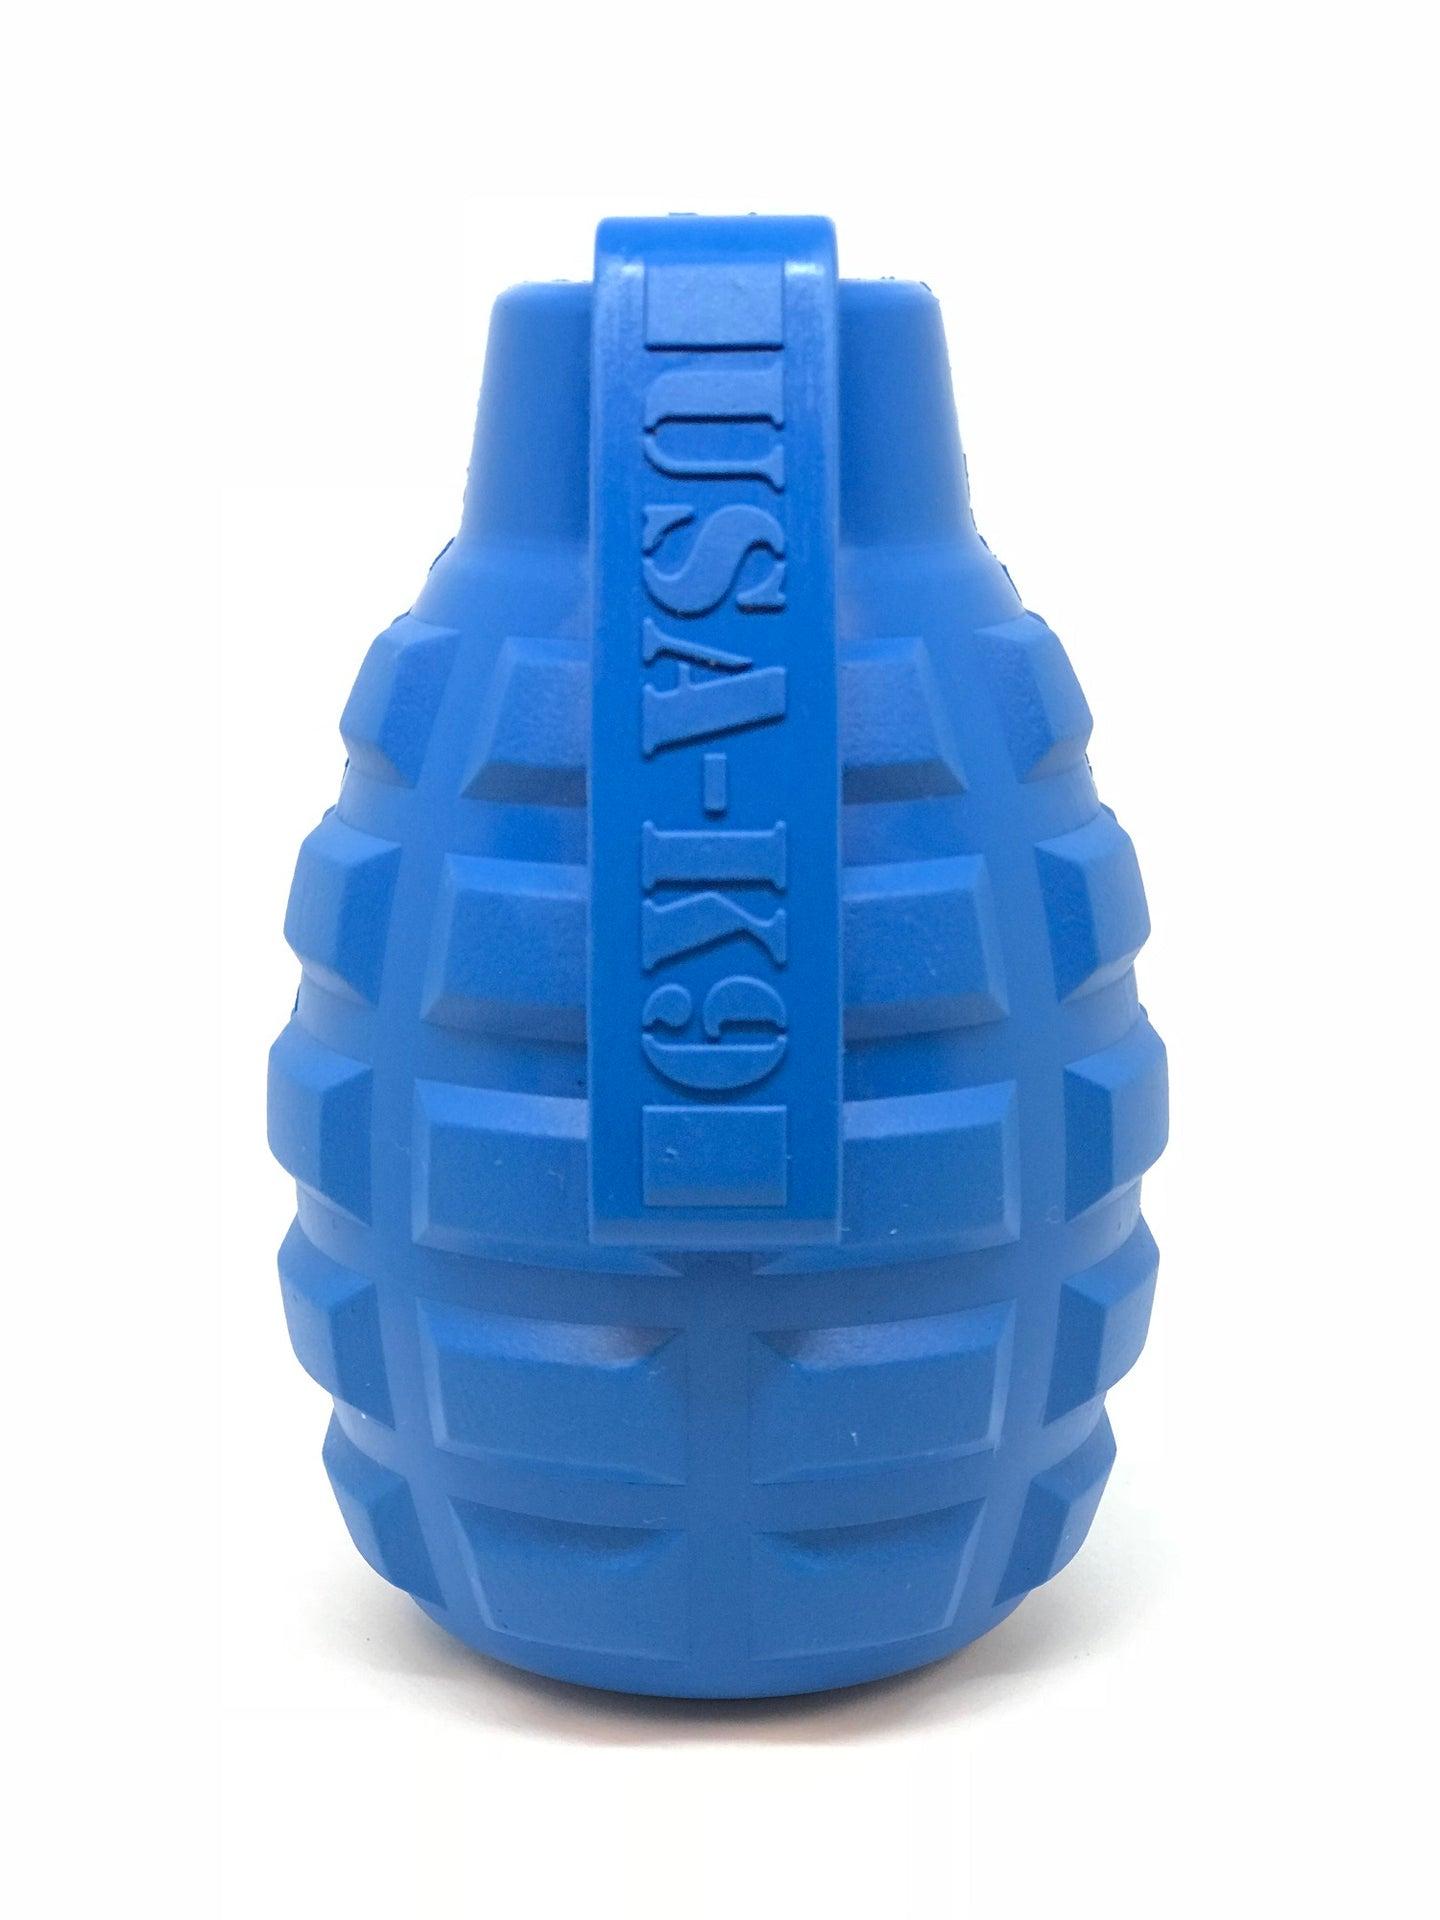 USA-K9 Grenade Treat Dispenser & Chew Toy - Blue